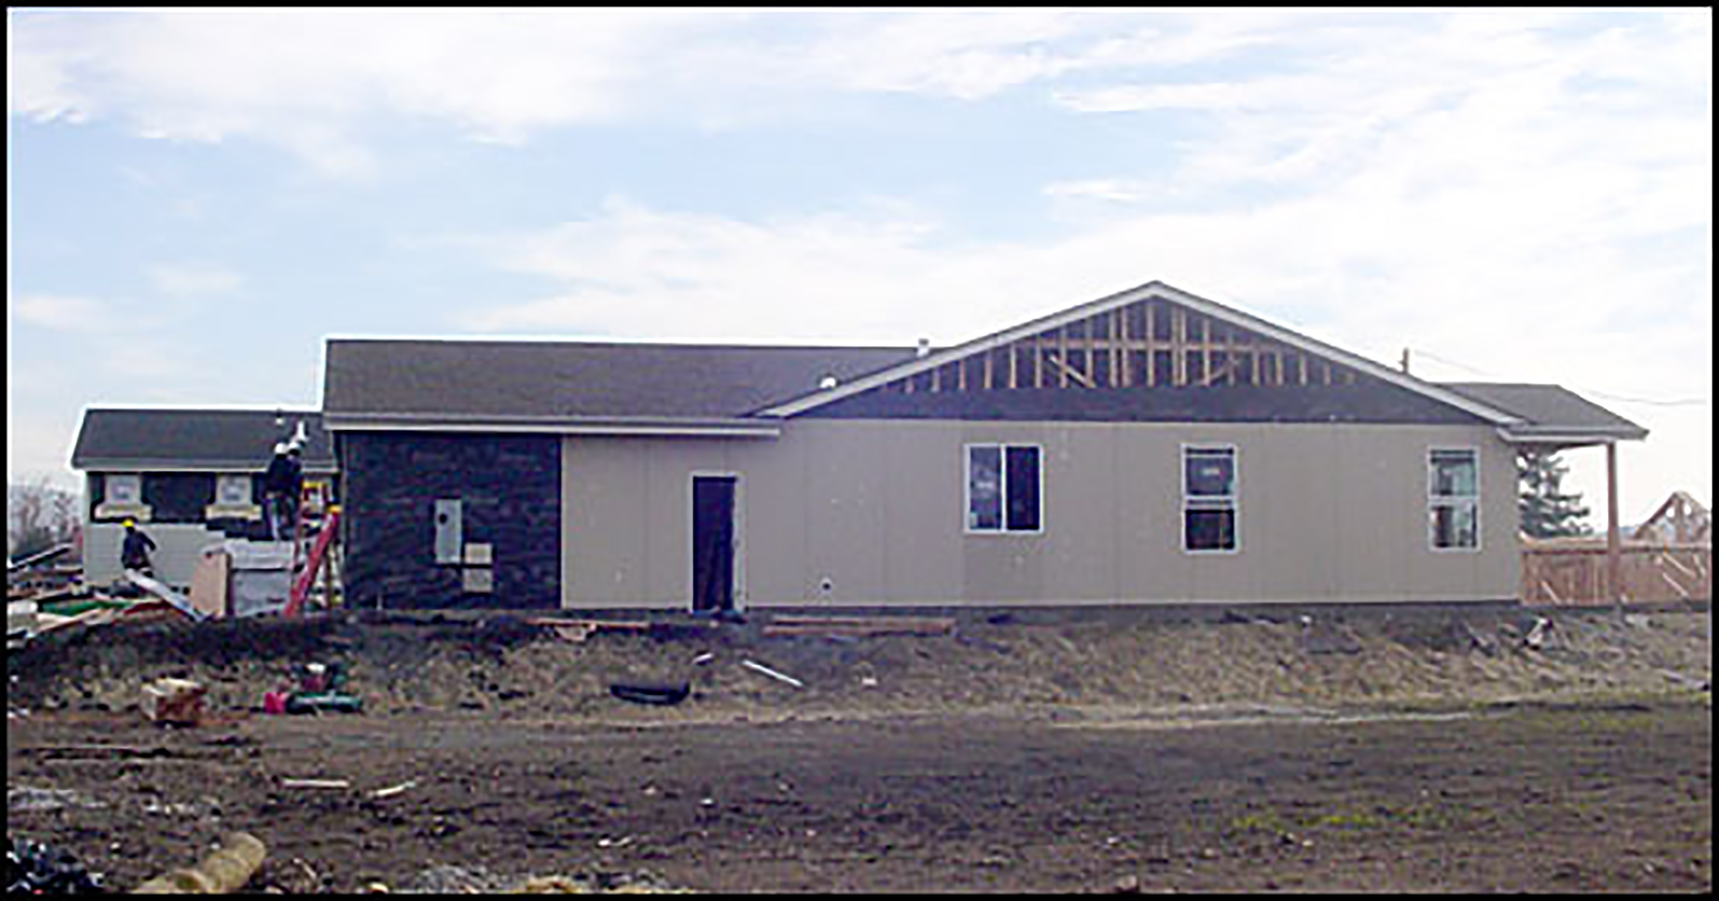 Featured Past Project New Homes At Oakmont Leduc And